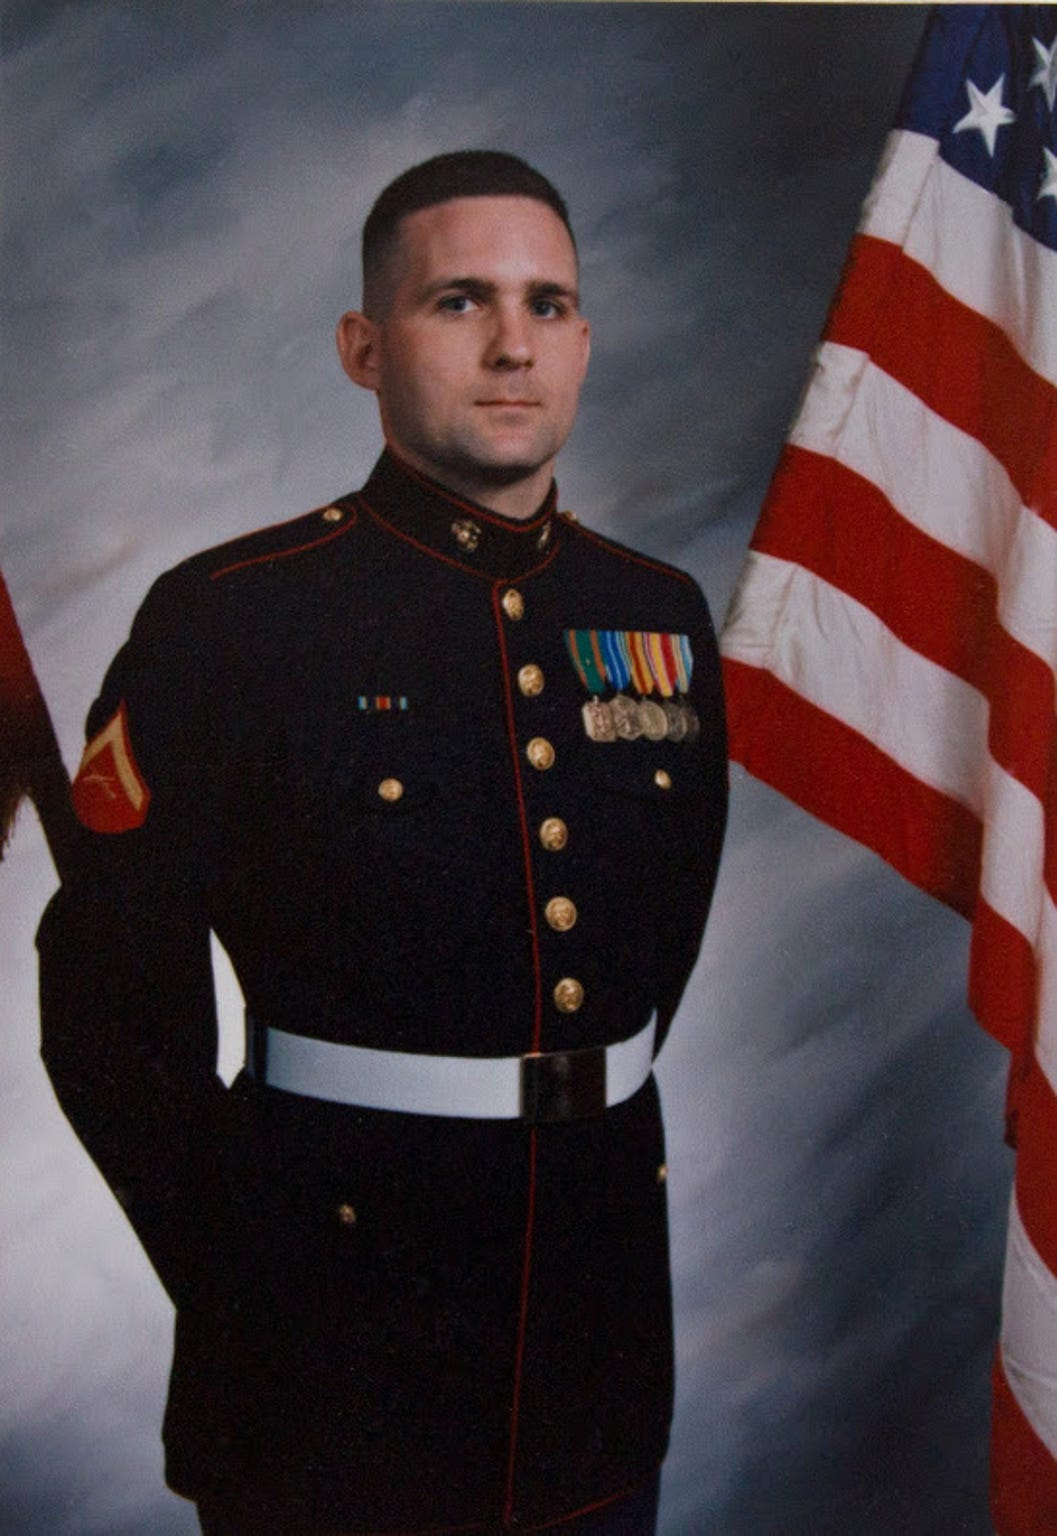 Paul Whelan in his Marine dress uniform.